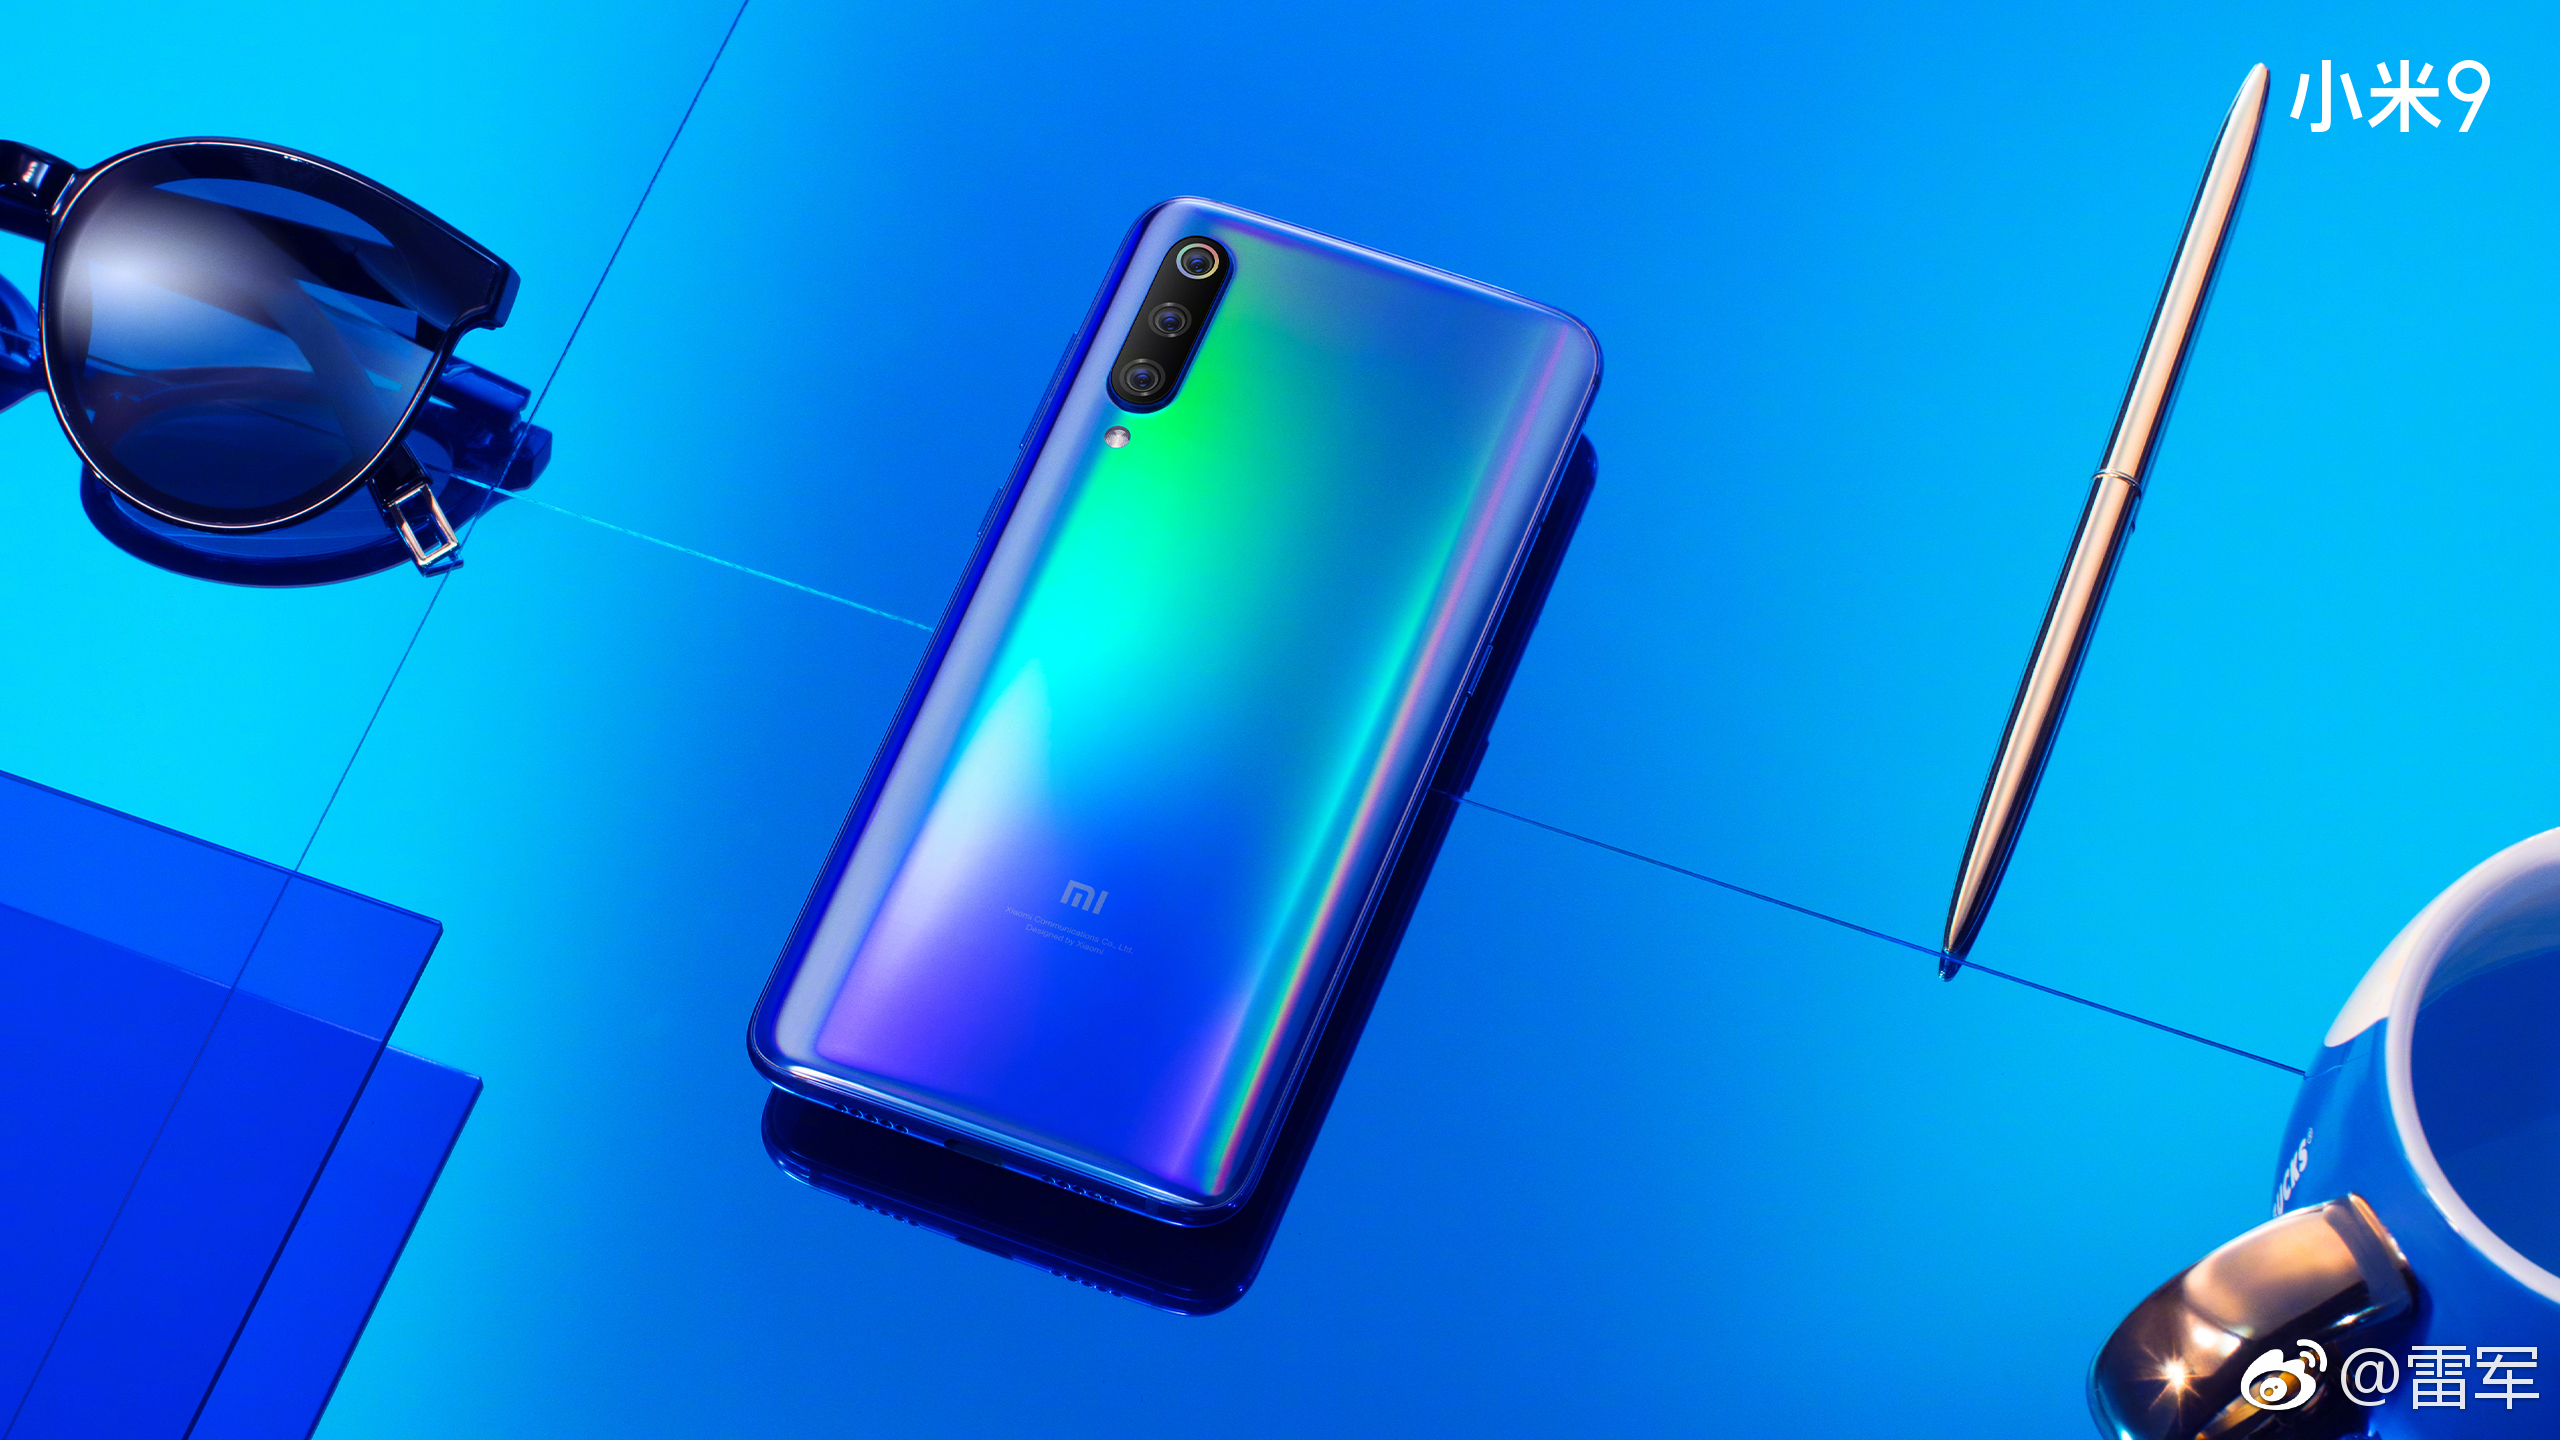 The Xiaomi Mi 9 could be 2019's most attractive smartphone